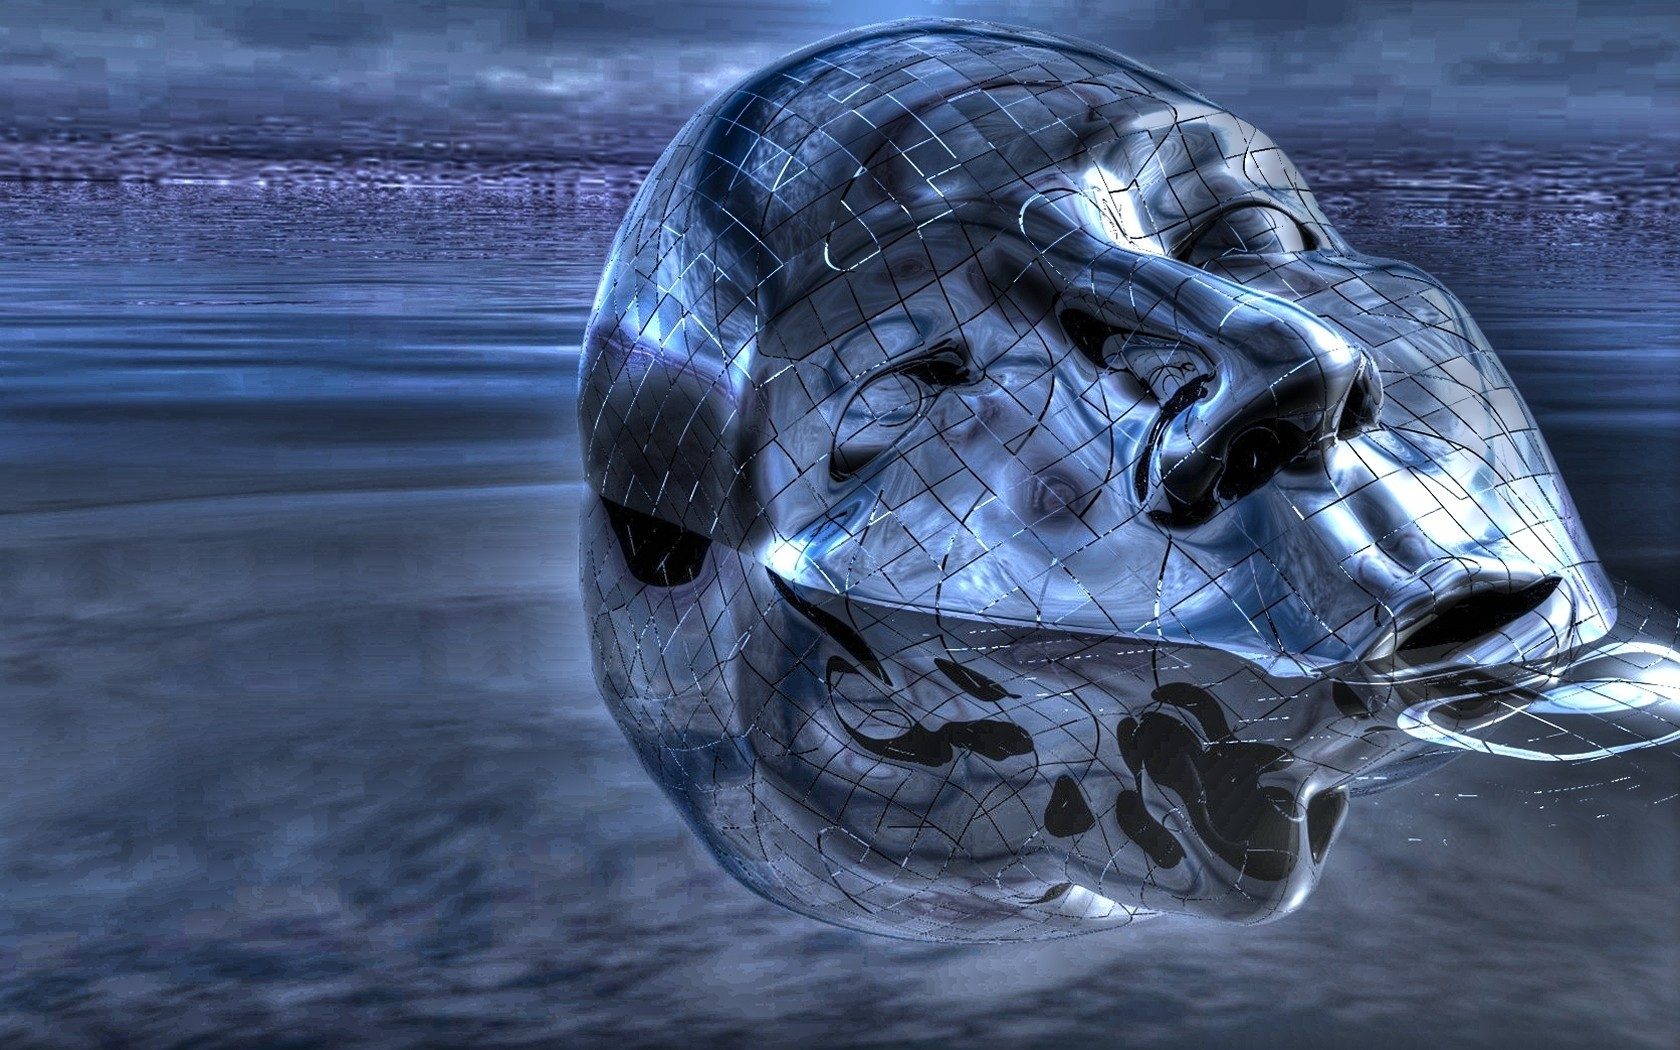 Water wet surreal hdr photography 3d wallpaper ...